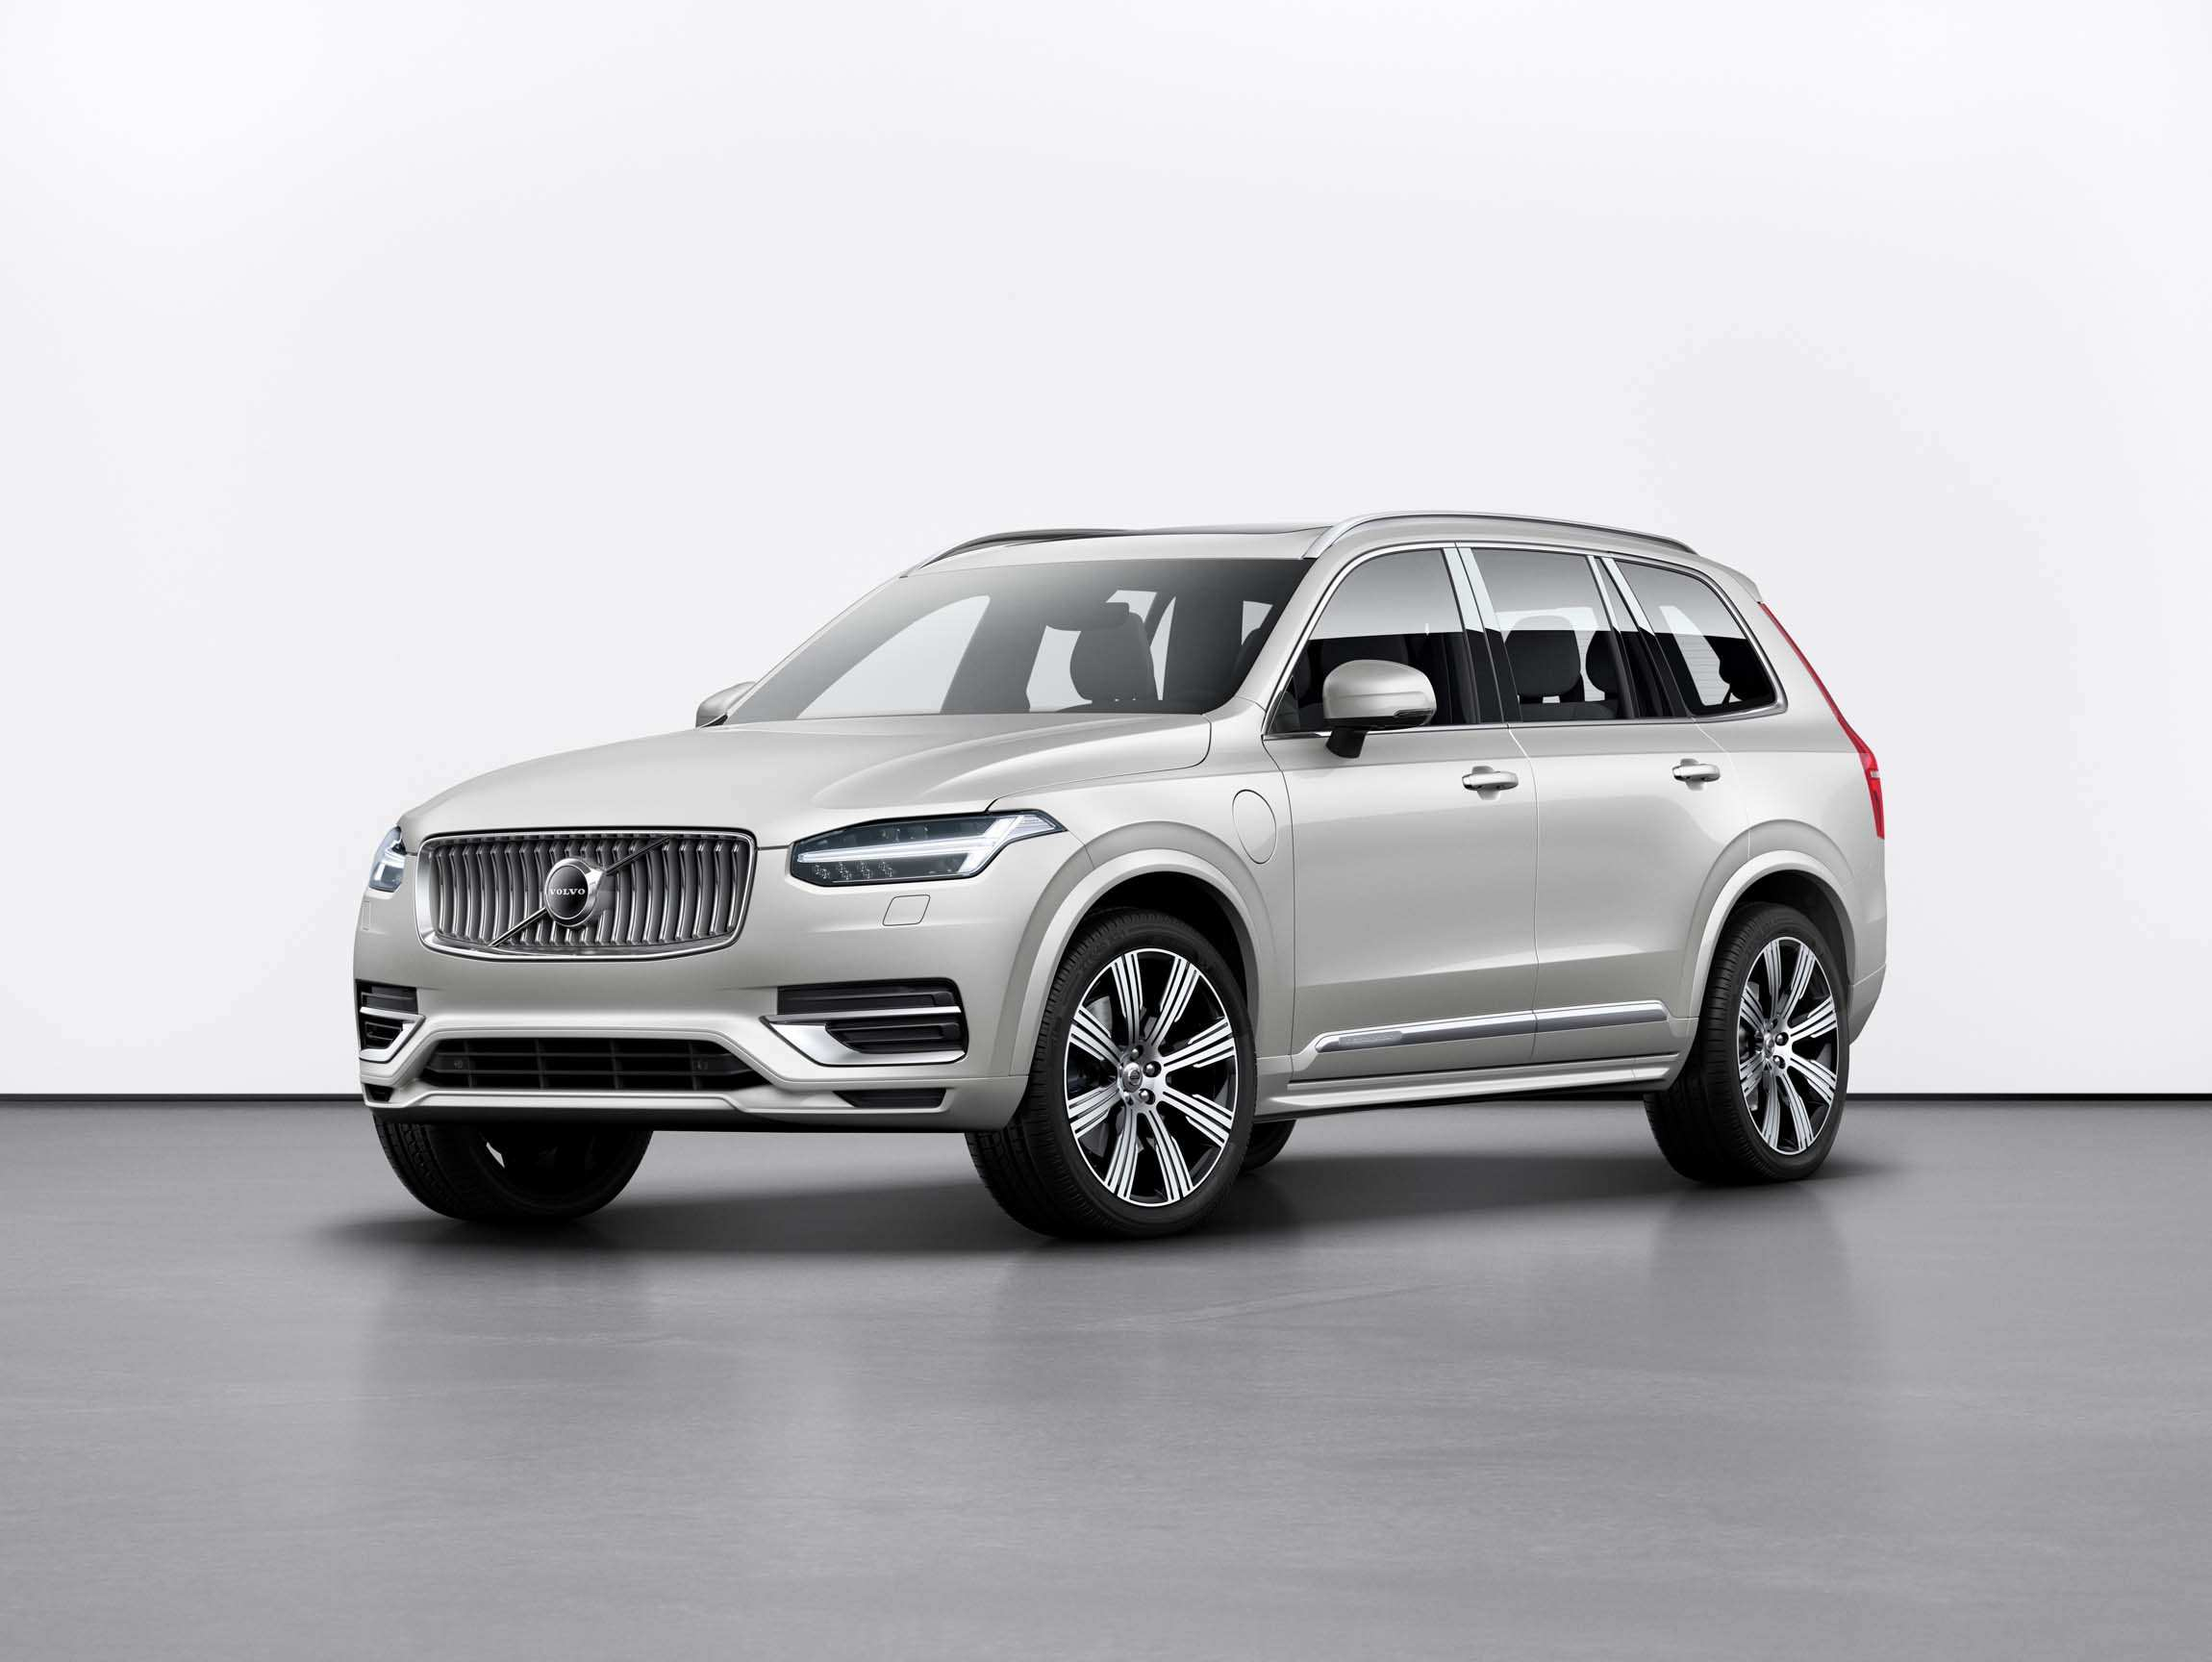 58 New Volvo Hybrid Cars 2020 Exterior with Volvo Hybrid Cars 2020